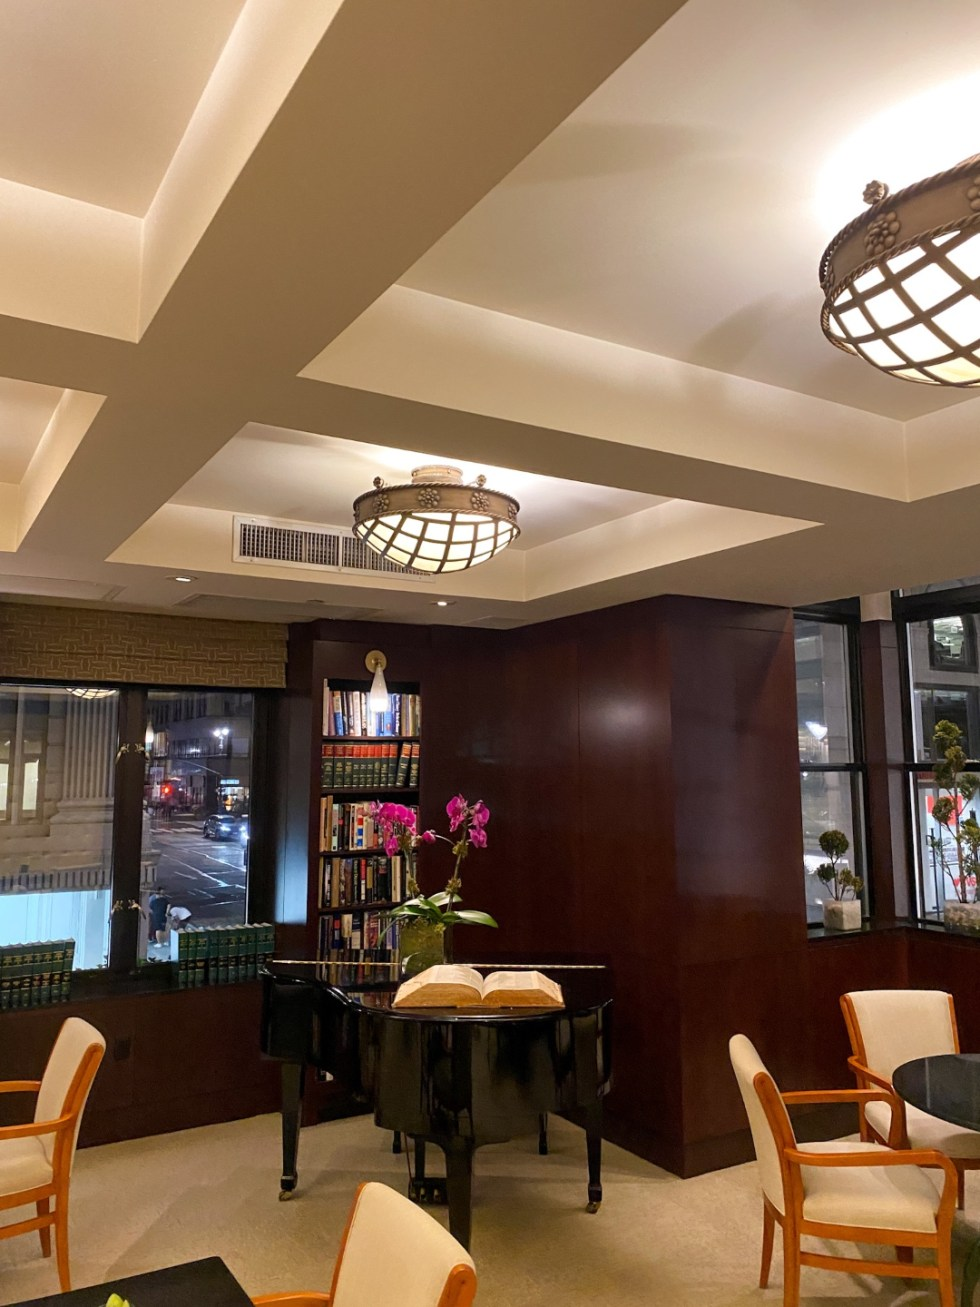 NYC Summer Weekend: Things to Do in NYC in the Summer - I'm Fixin' To - @imfixintoblog   NYC Summer Weekend by popular NC travel blog, I'm Fixin' To: image of a lounge with a black baby grand piano, bookcases, and round tables with tan upholstered chairs.